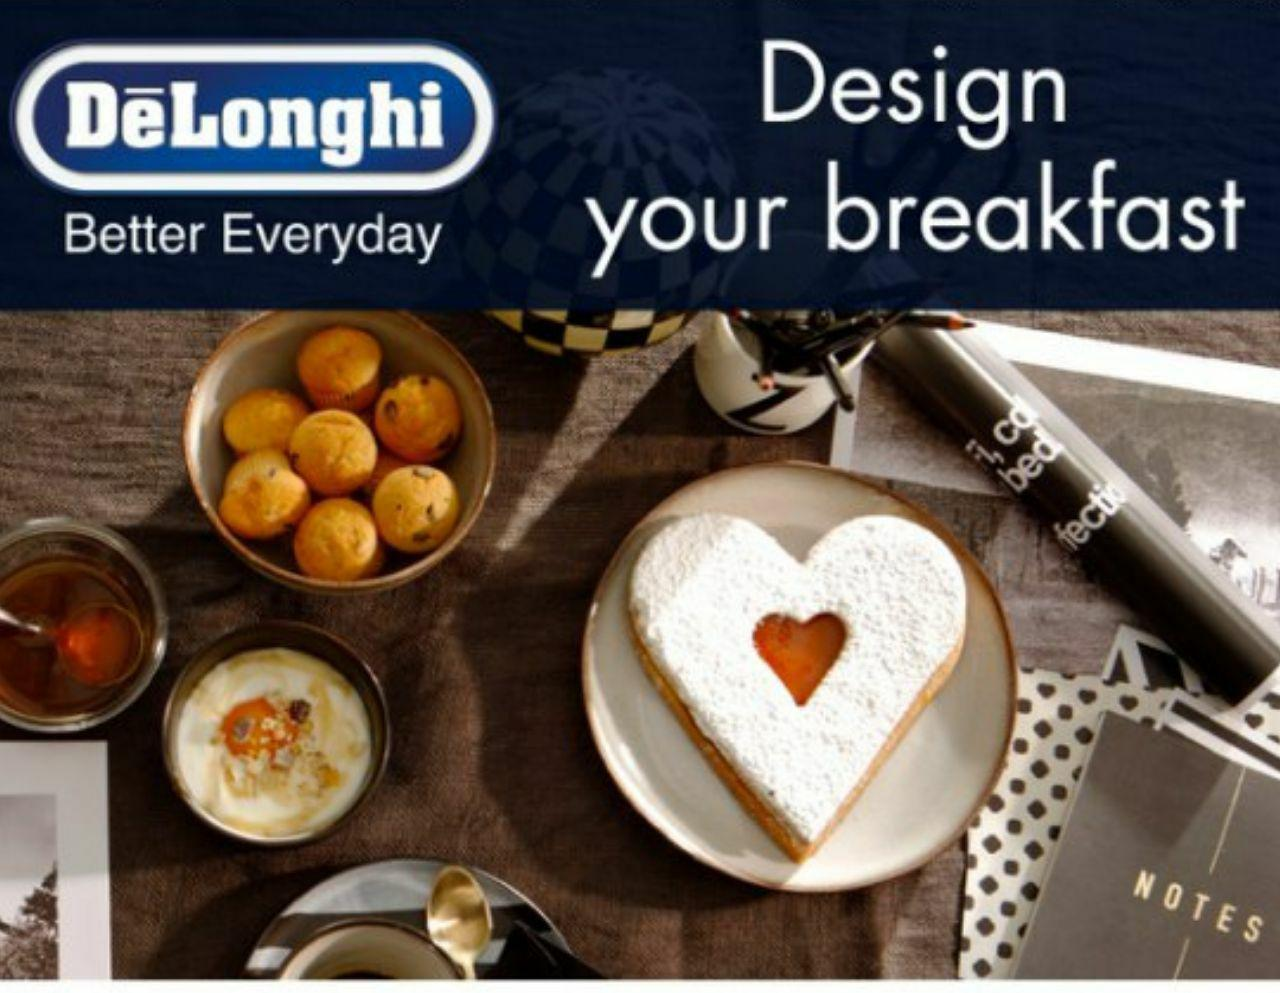 De'Longhi Design Your Breakfast - International call for entries